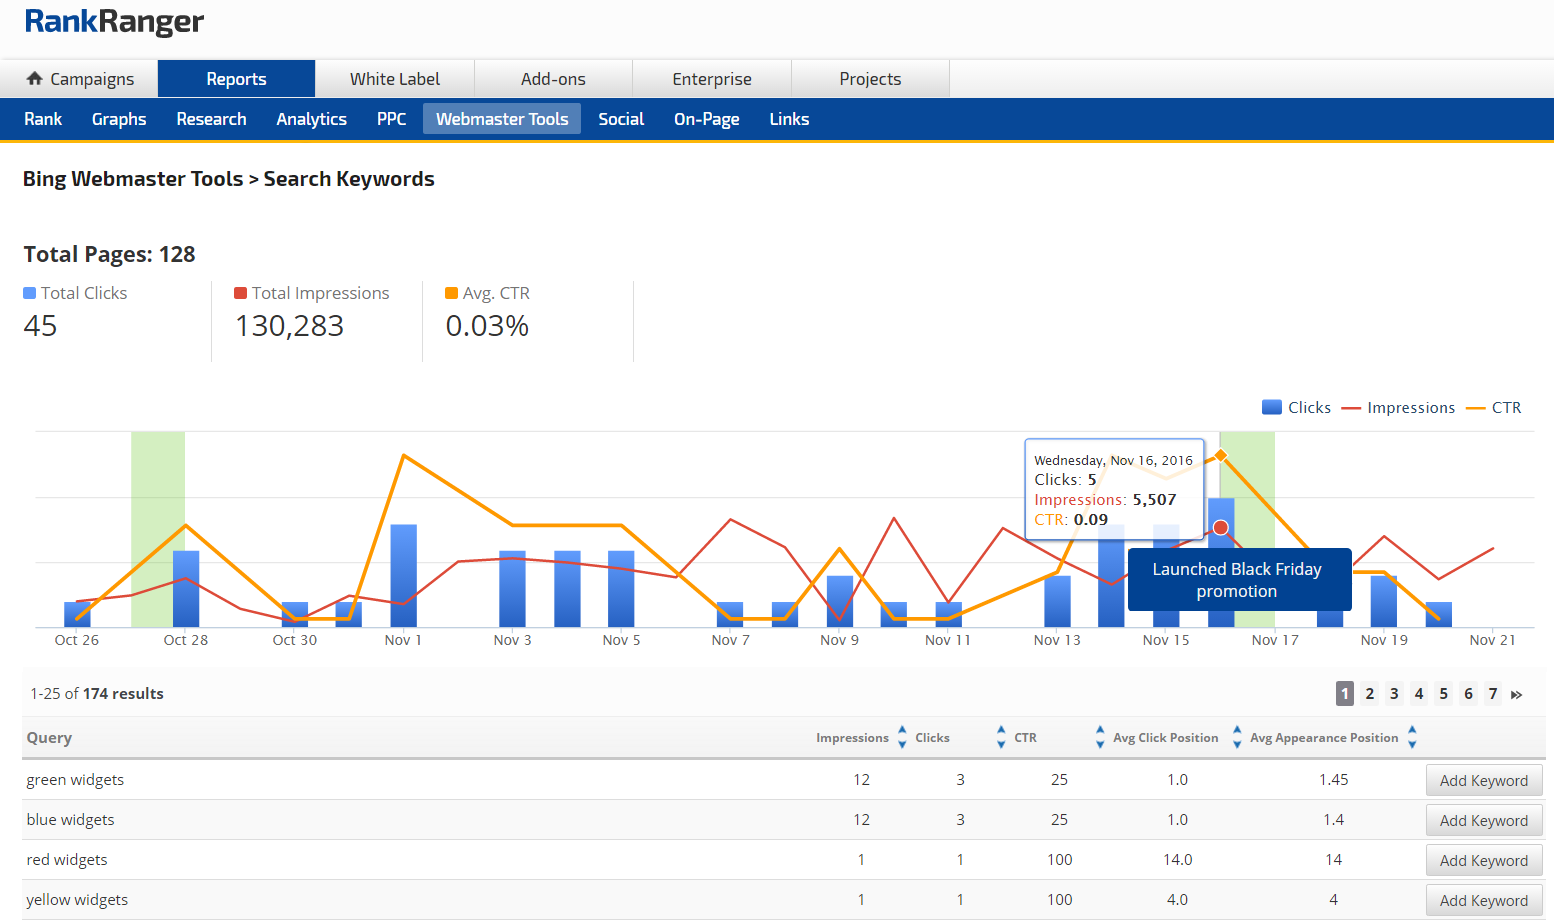 Bign Webmaster Tools Search Keywords Report